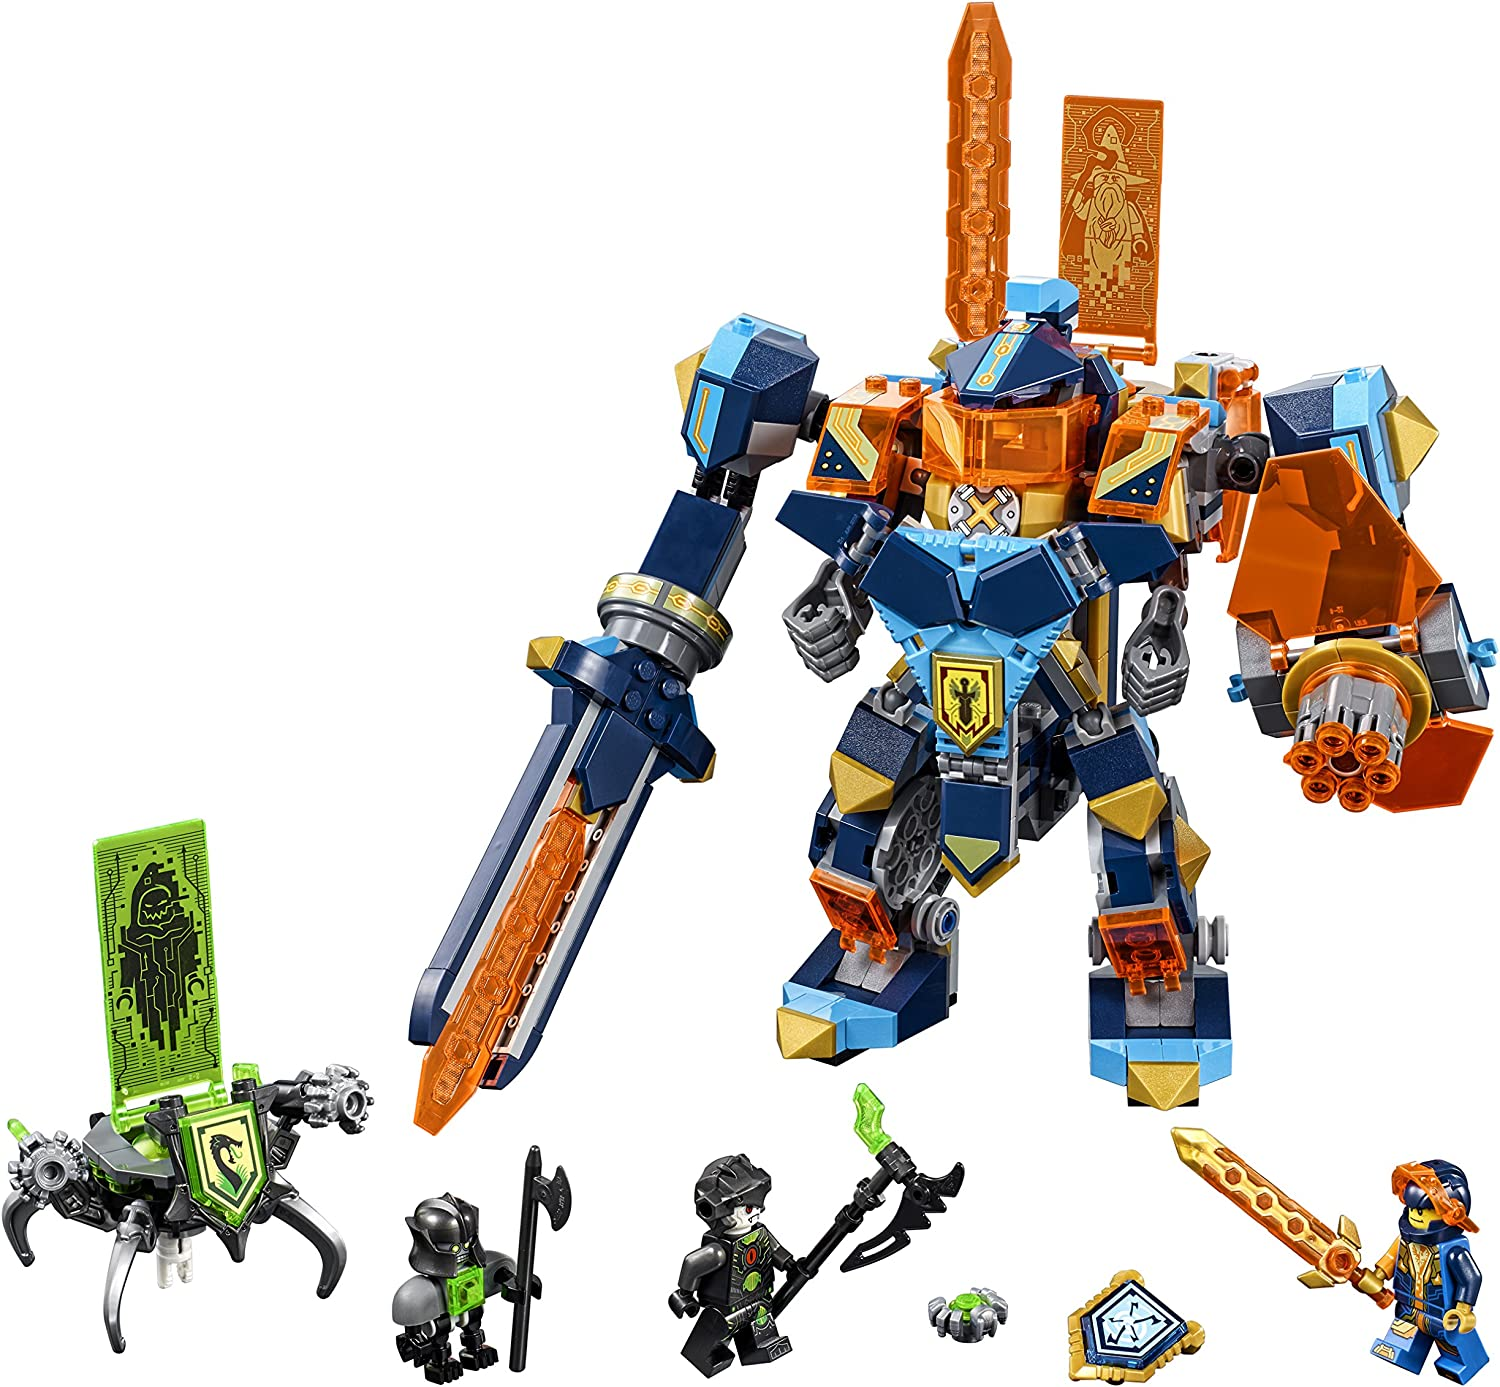 LEGO NEXO KNIGHTS Tech Wizard Showdown 72004 Building Kit (506 Piece)